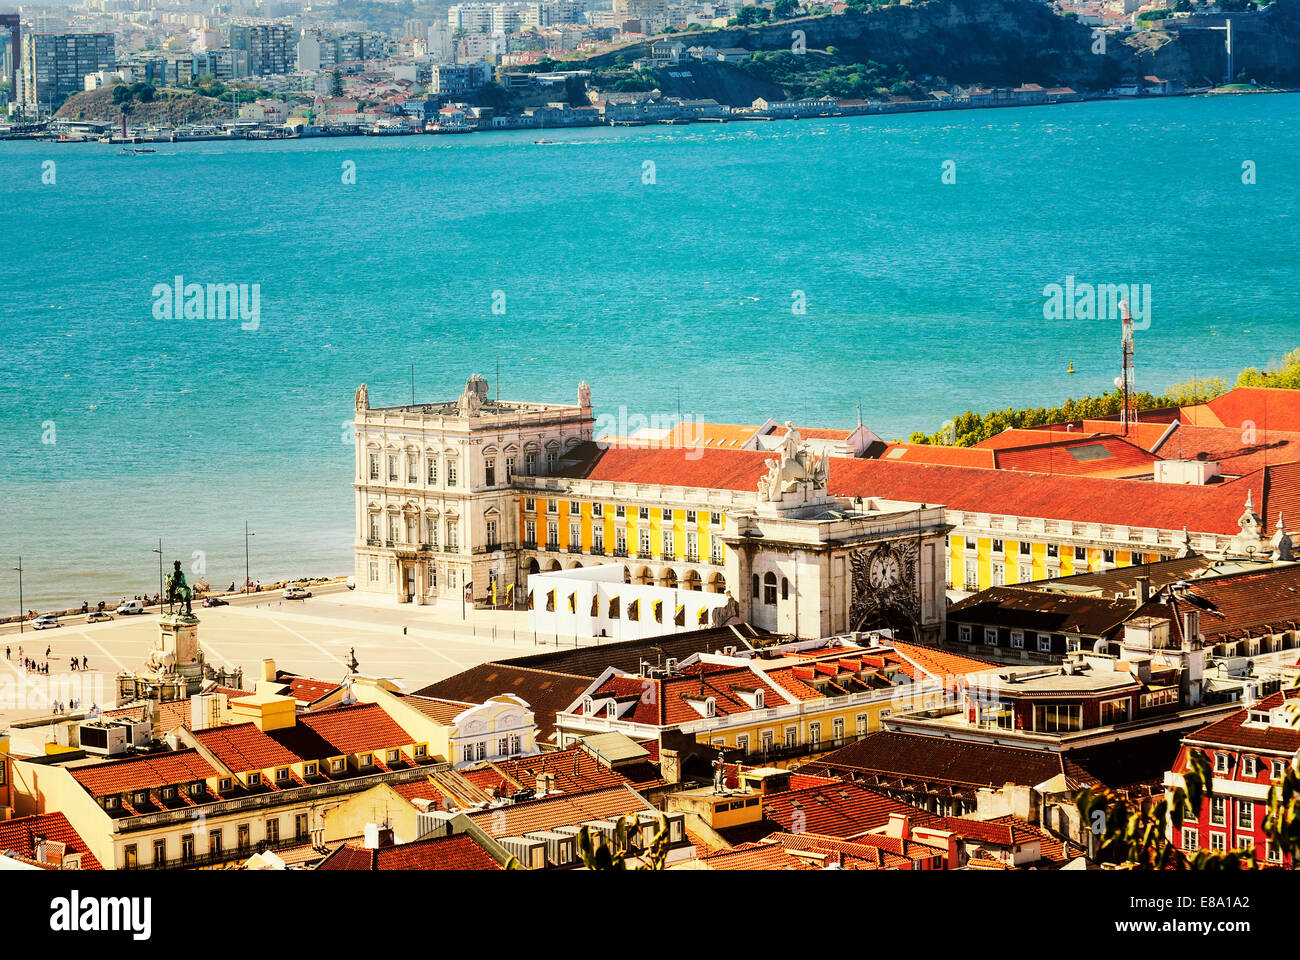 view of commerce place in Lisbon, Baixa district near the famous Tage river - Stock Image